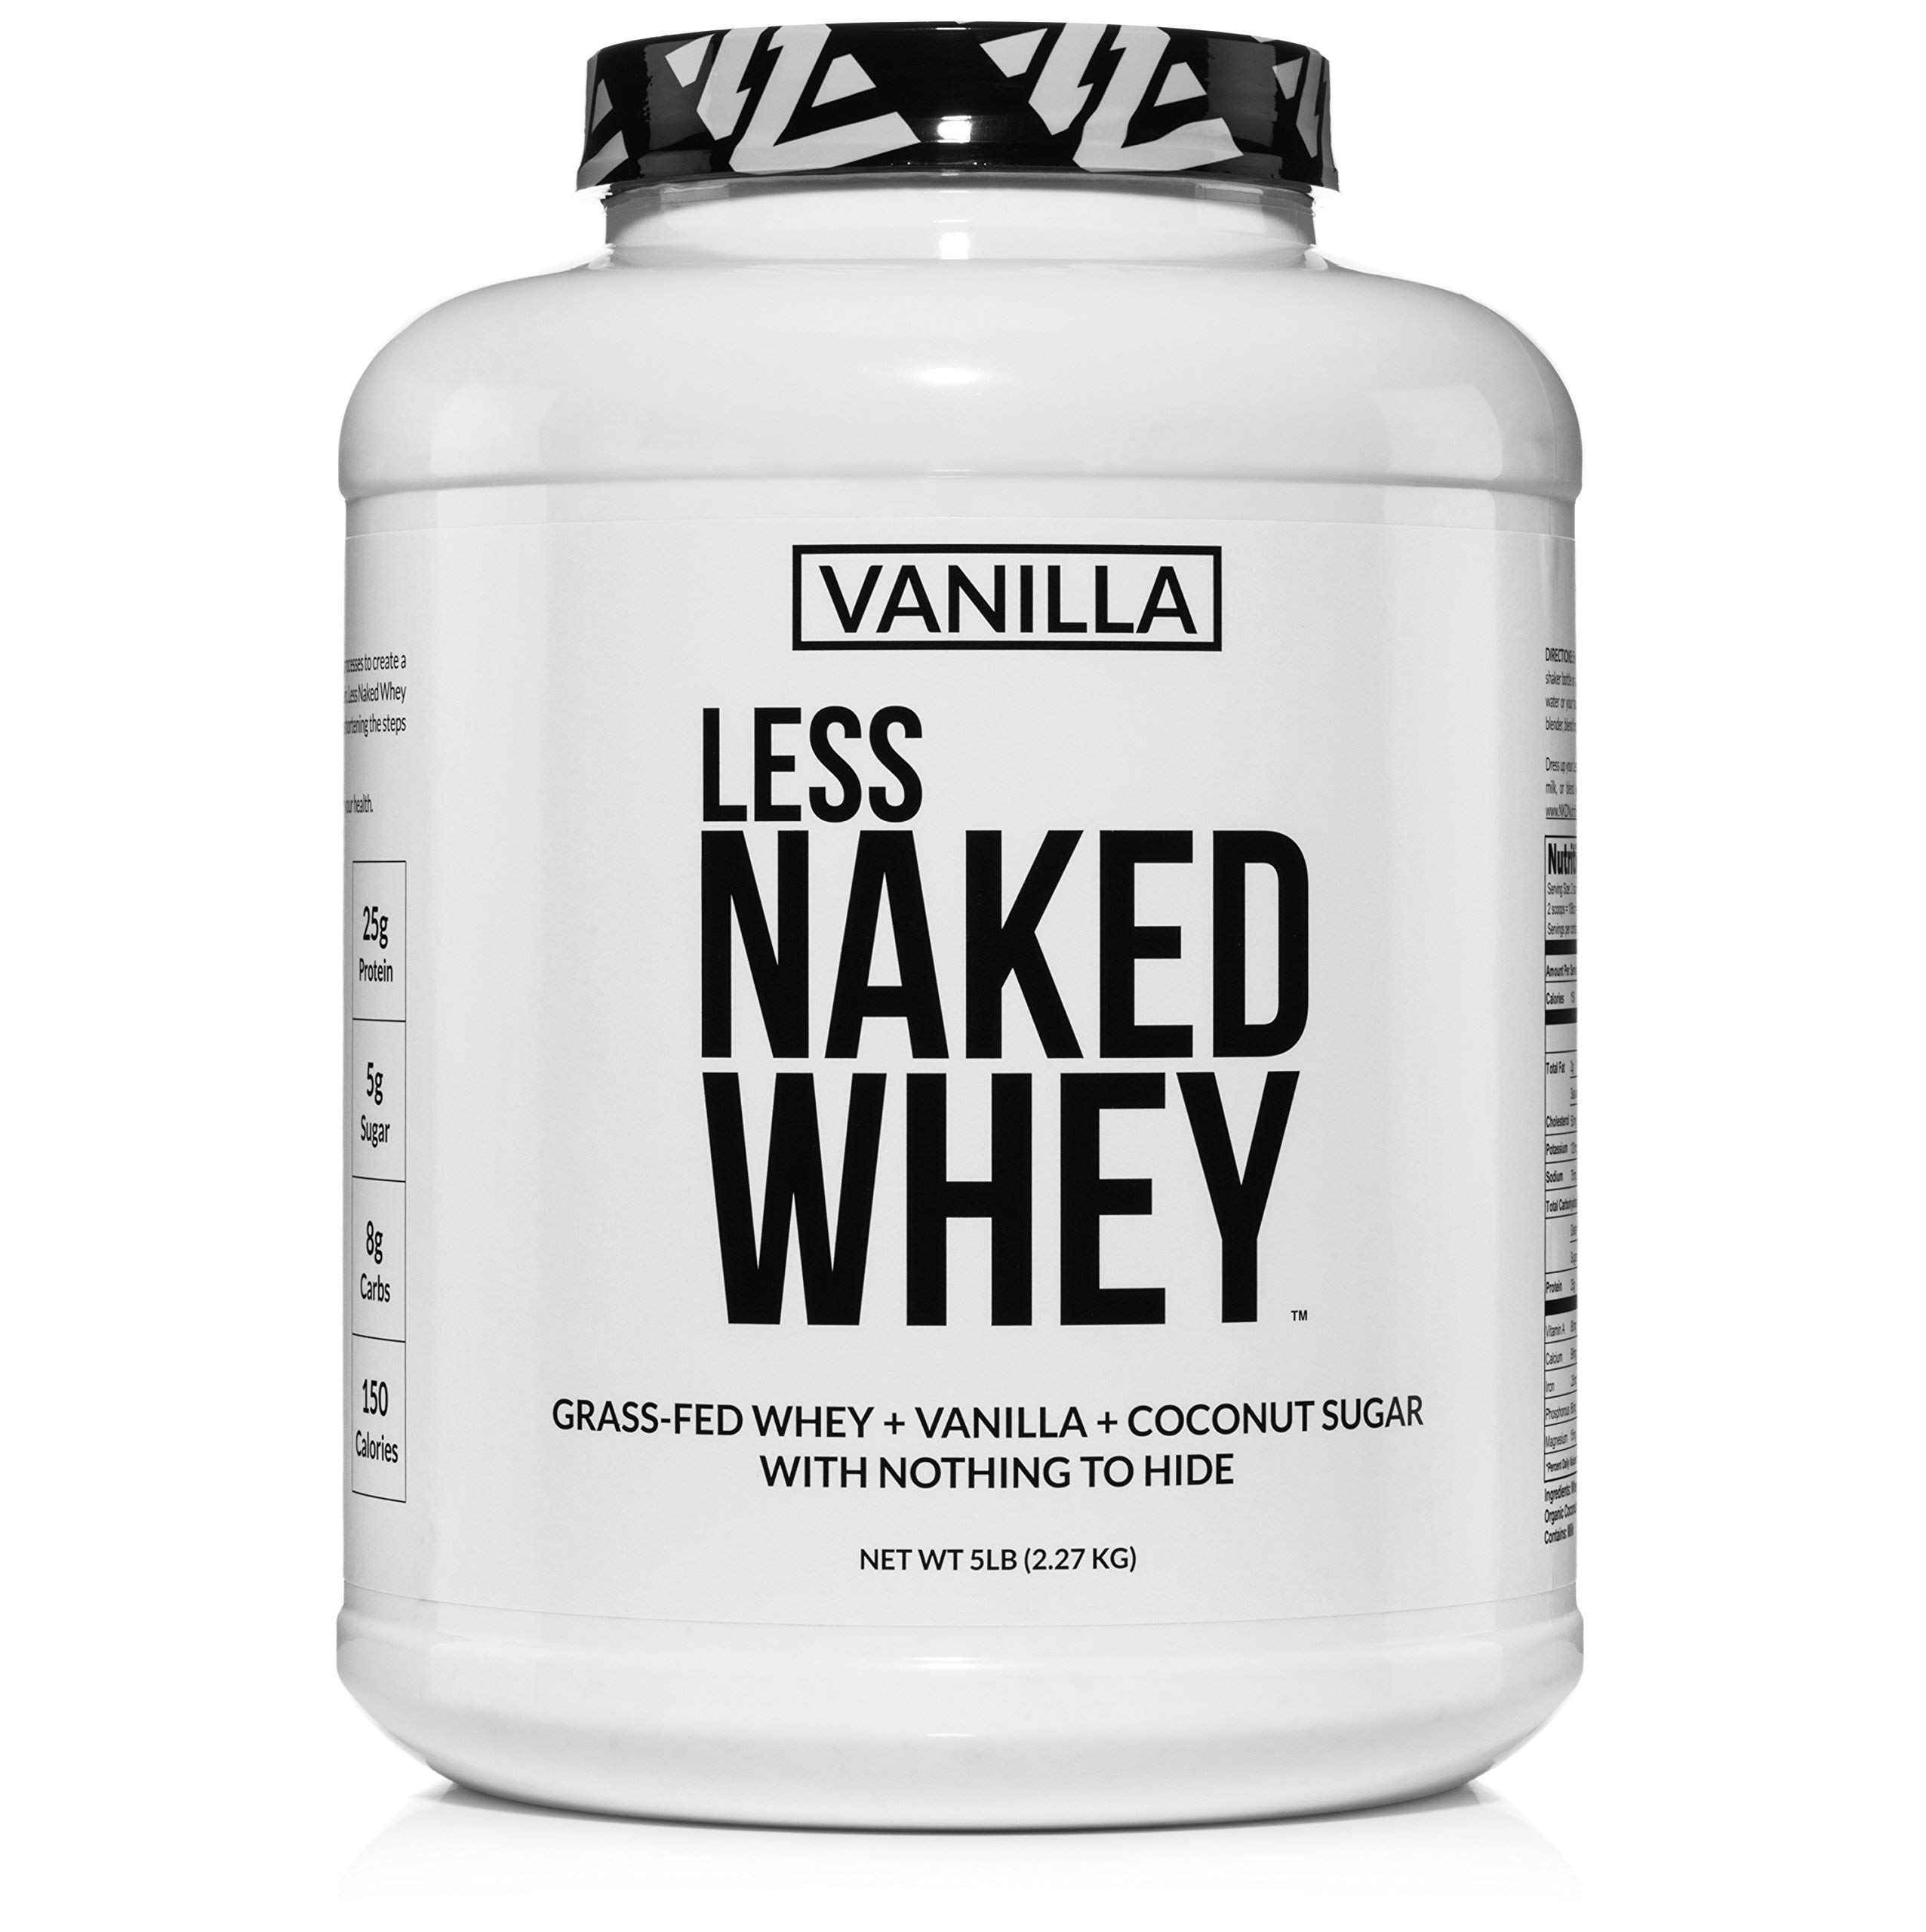 Less Naked Whey Vanilla Protein - All Natural Grass Fed Whey Protein Powder + Vanilla + Coconut Sugar- 5lb Bulk, GMO-Free, Soy Free, Gluten Free. Aid Muscle Growth & Recovery - 61 Servings by NAKED nutrition